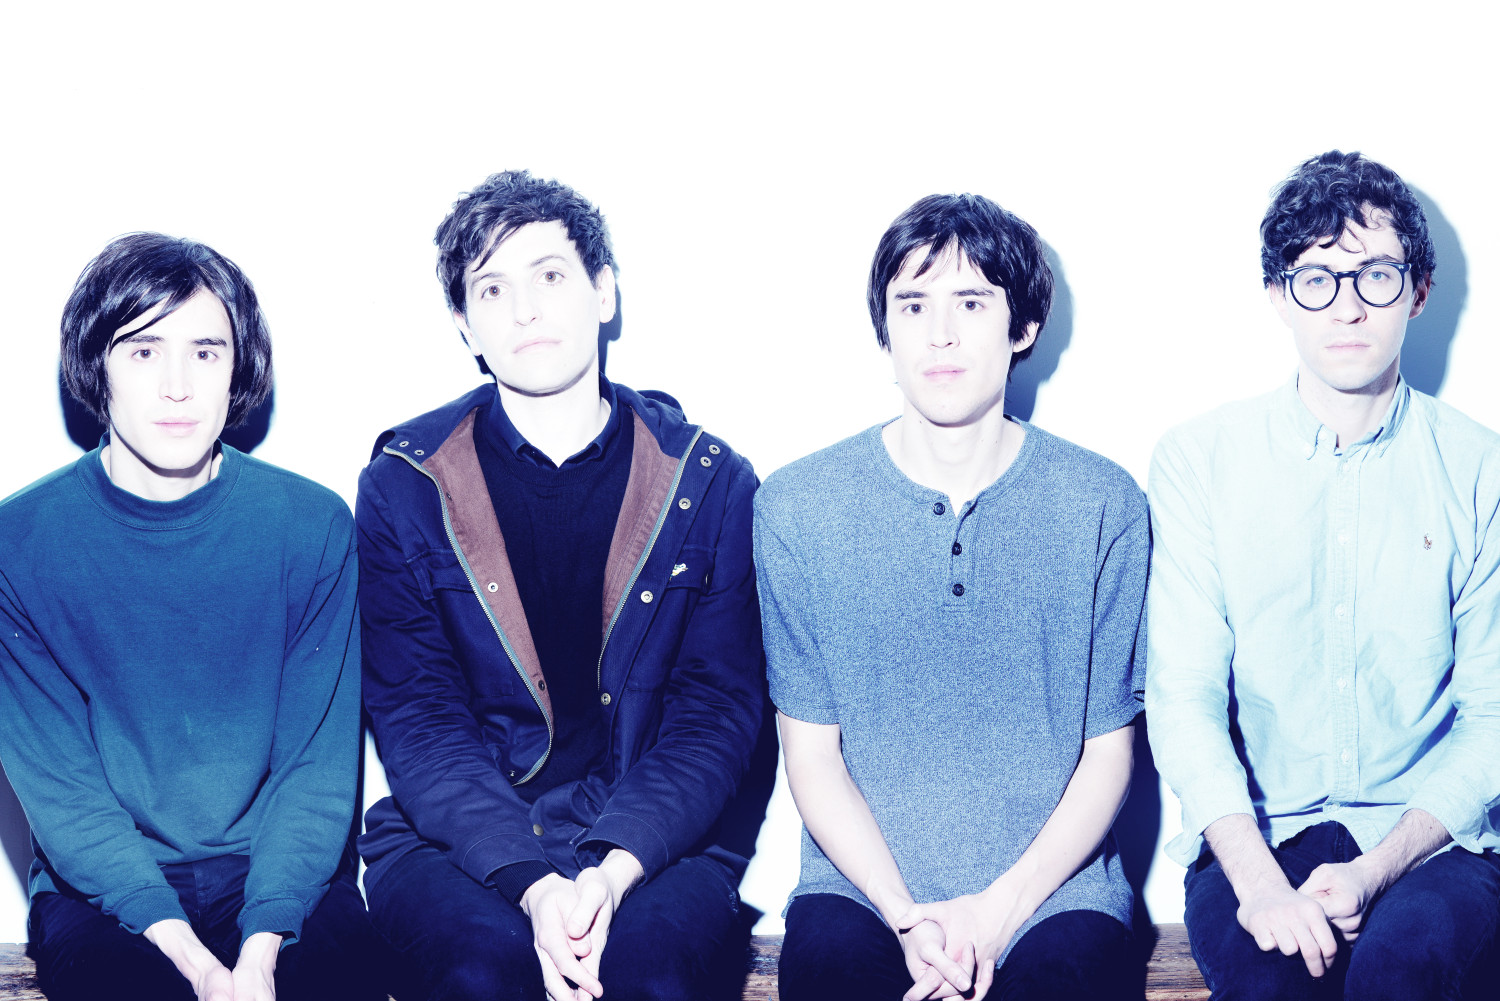 El single Simple and sure incluirá tema inédito de The Pains of Being Pure At Heart